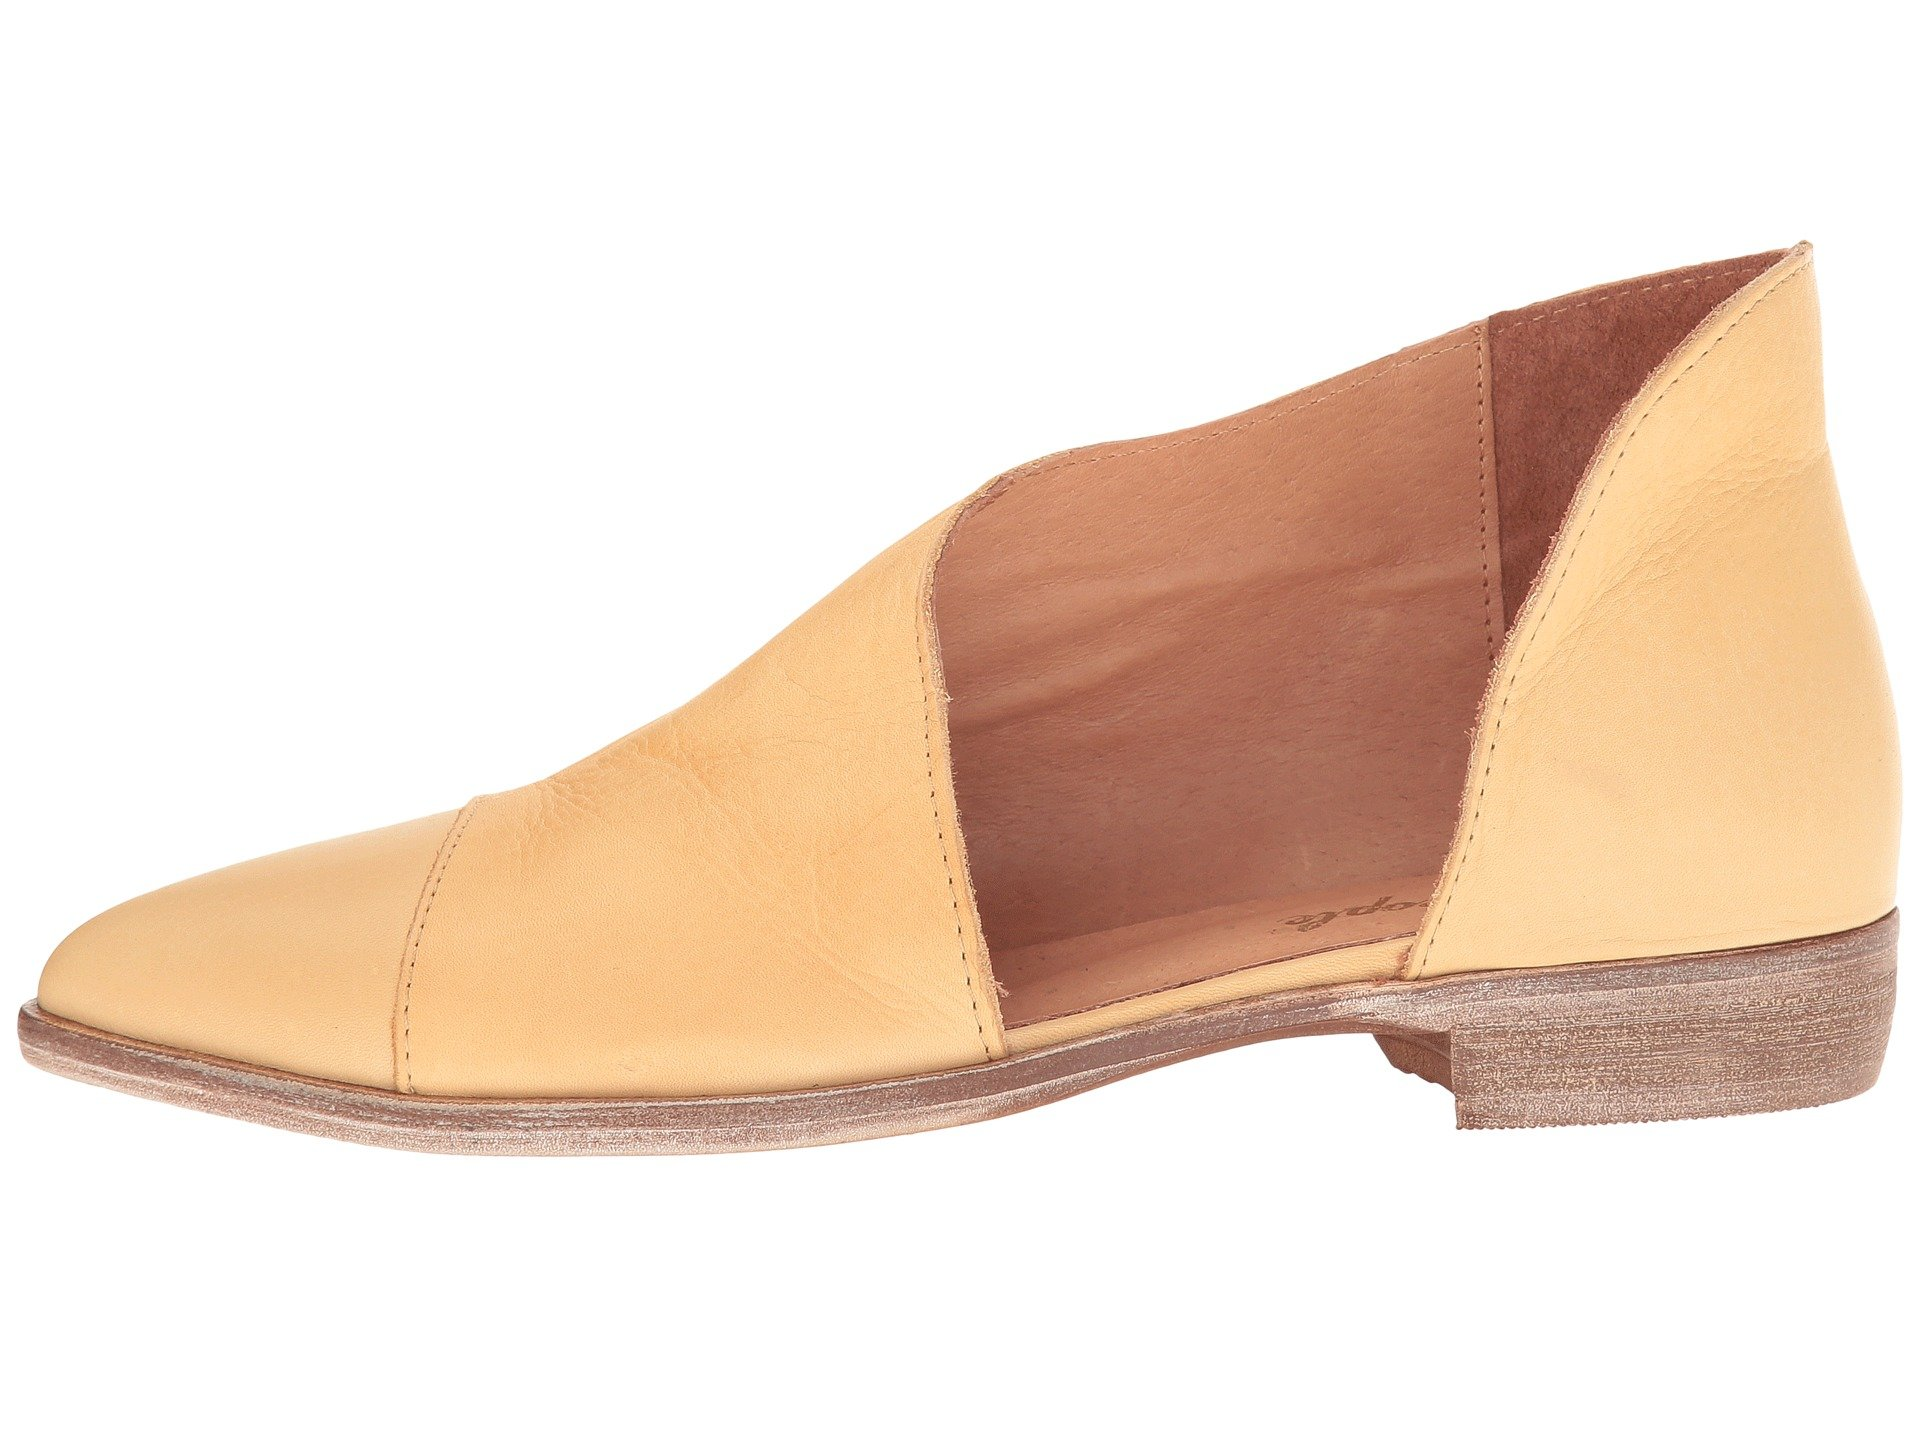 Free People Royale Flat (38 M EU) by Free People (Image #6)